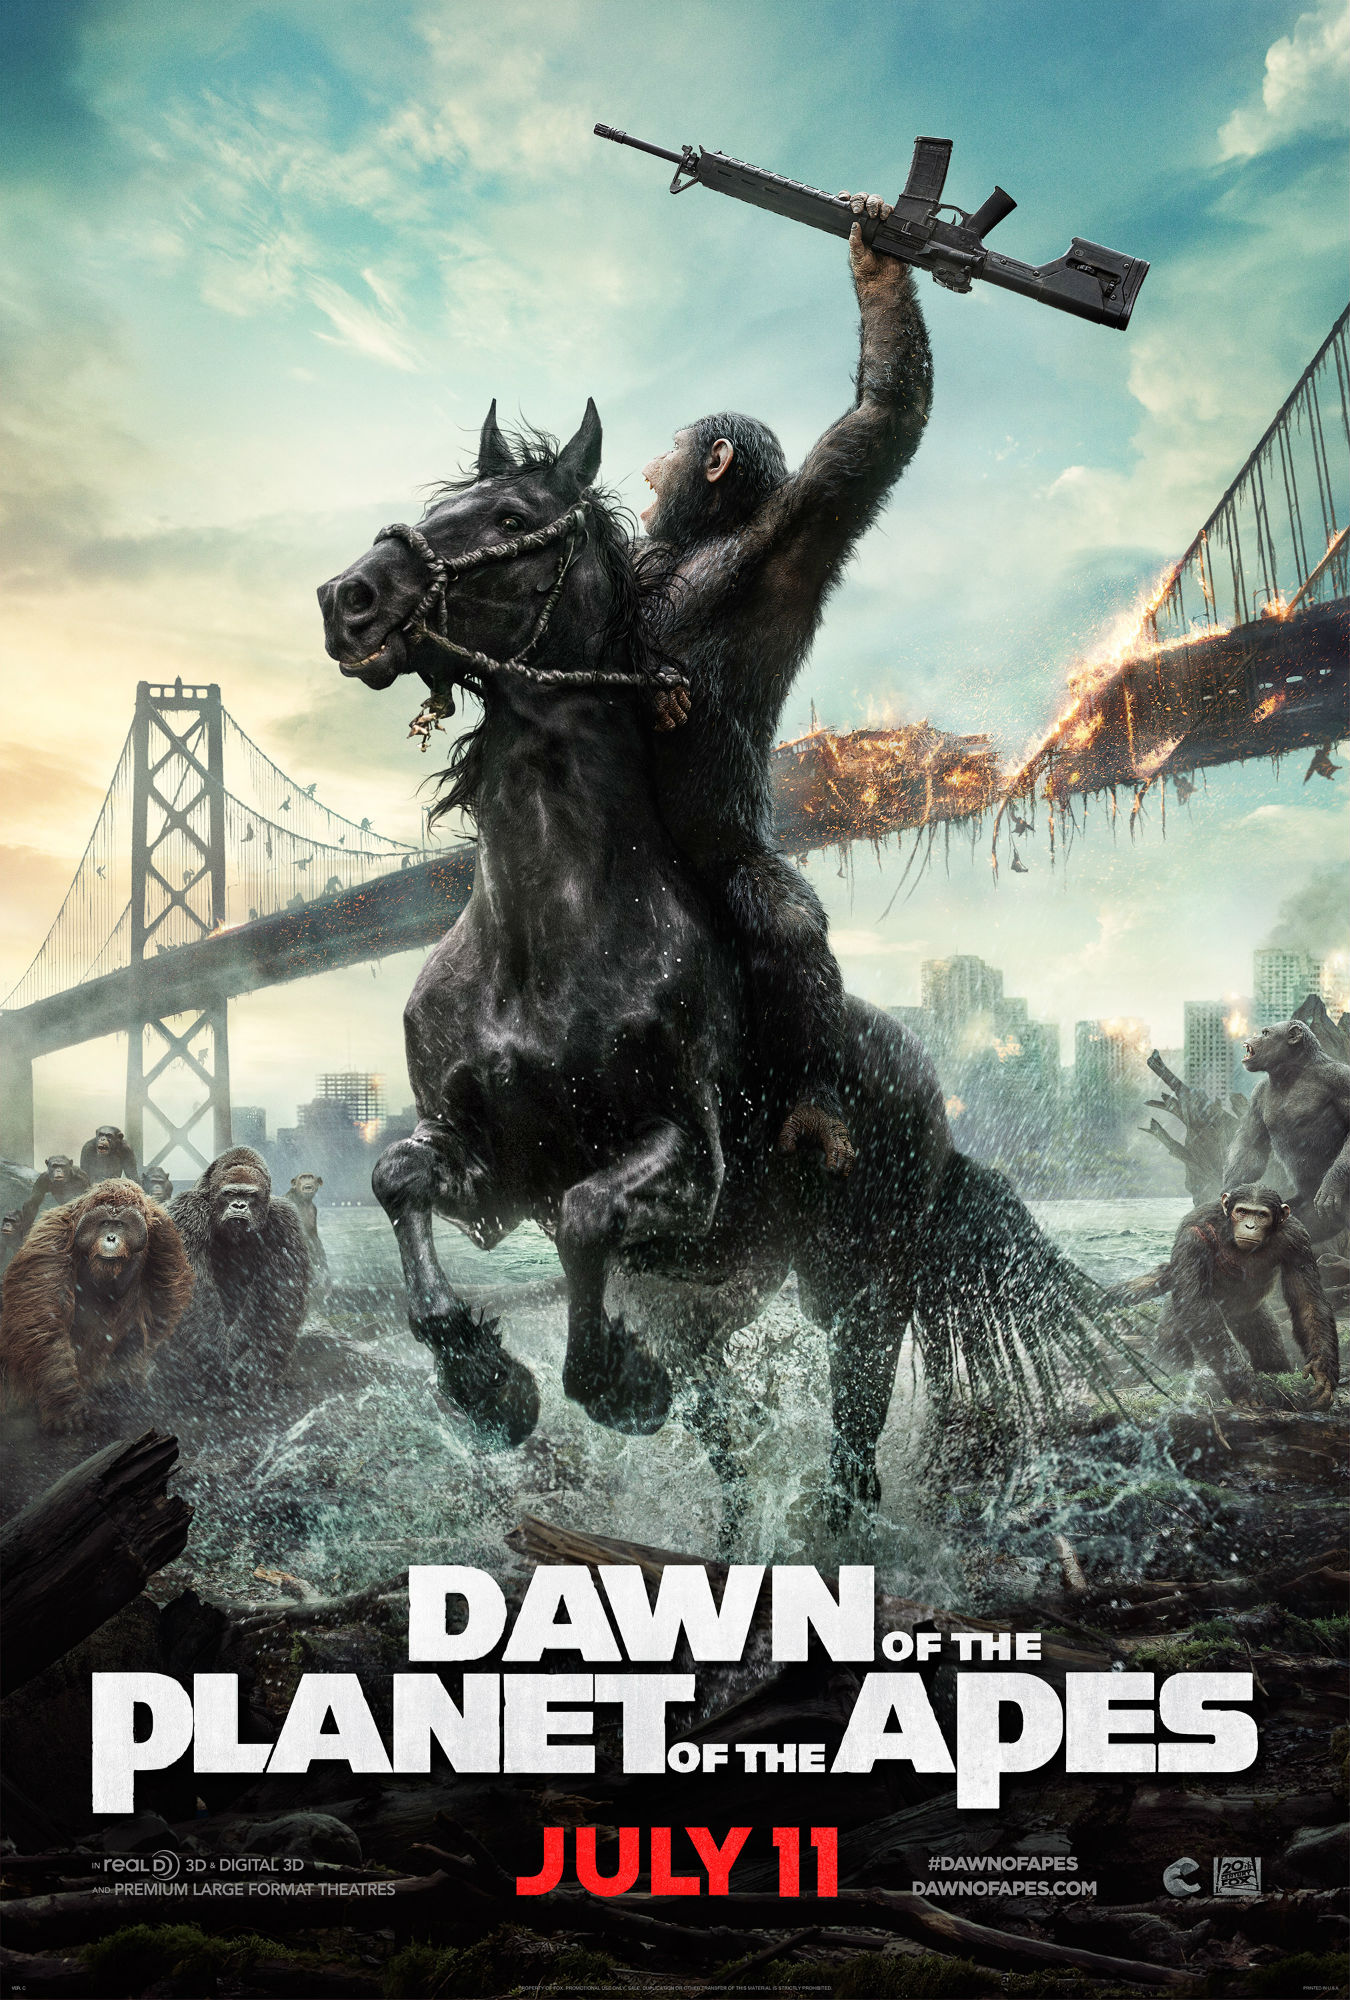 Dawn of the Planet of the Apes' New Poster Is Awesome